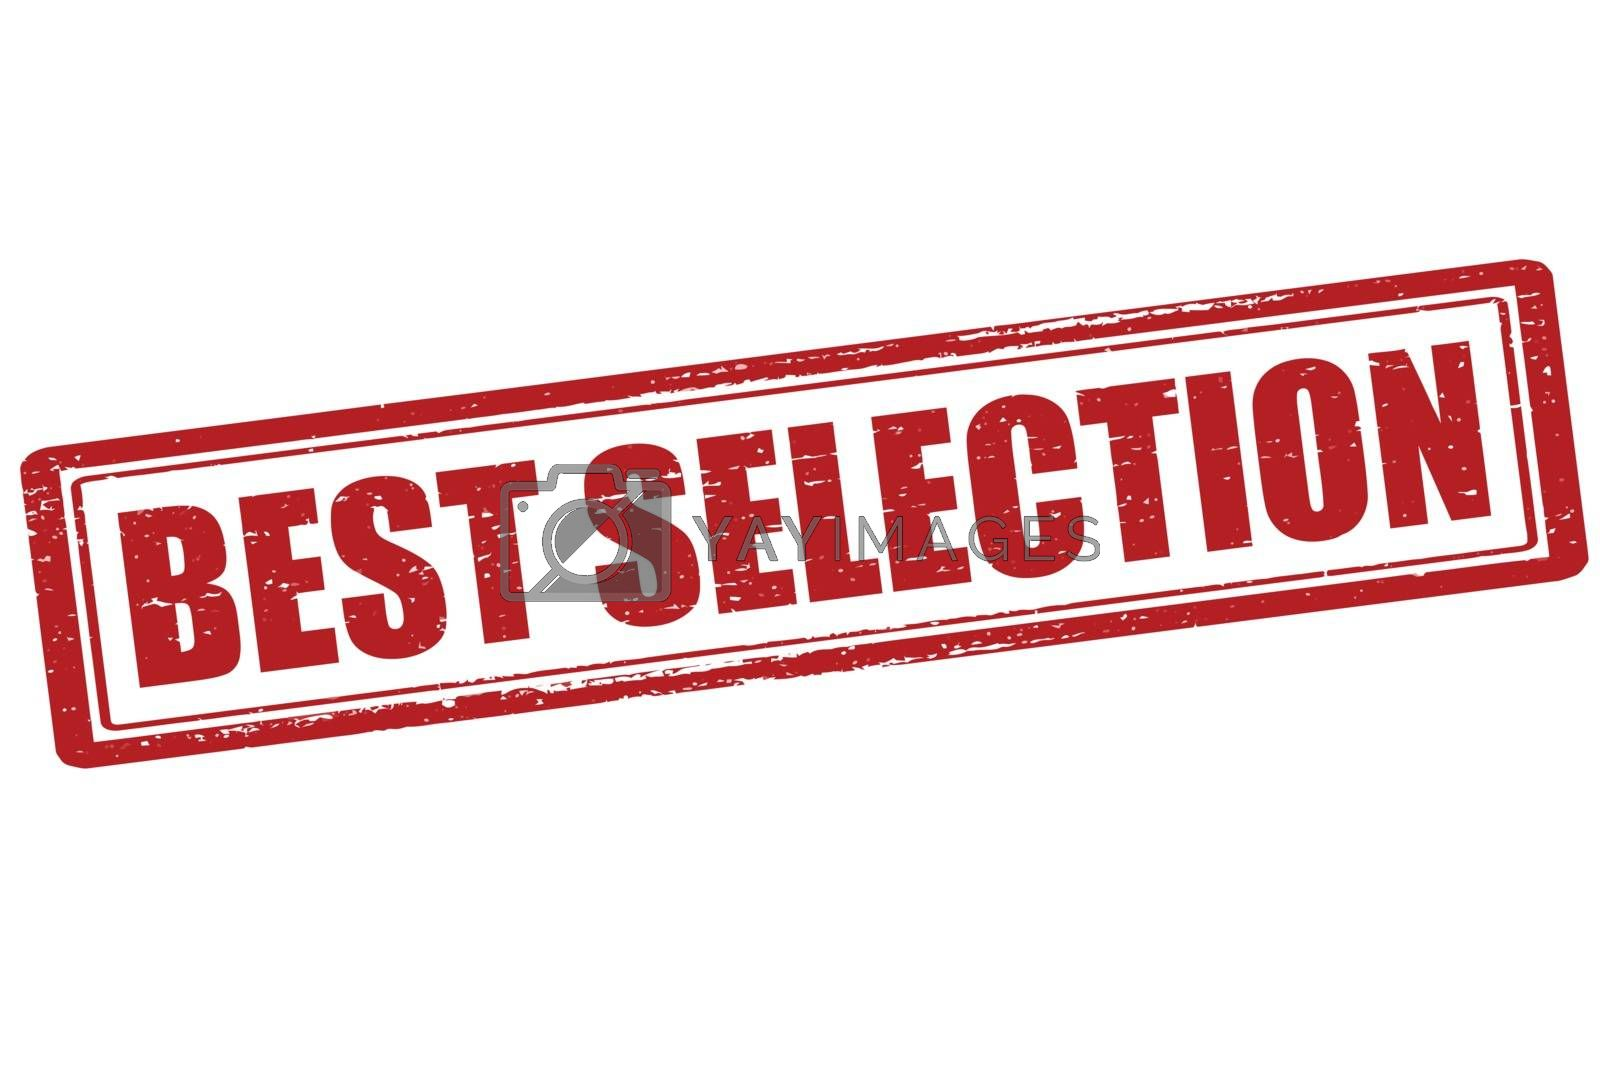 Royalty free image of Best selection by carmenbobo